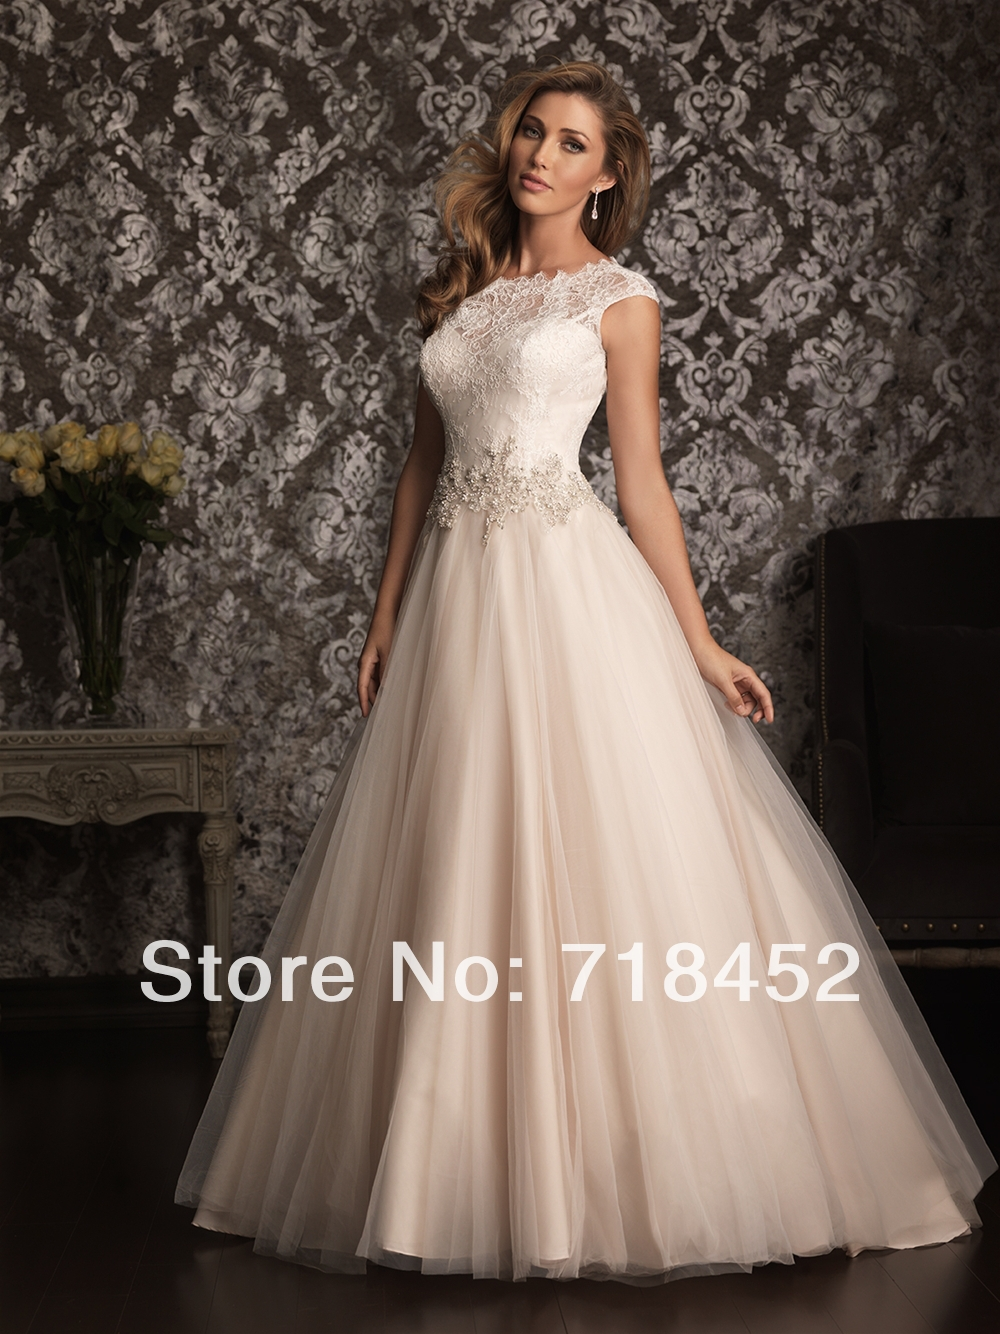 New Style Wedding Dress: Aliexpress.com : Buy 2014 New 50s Style Wedding Dresses